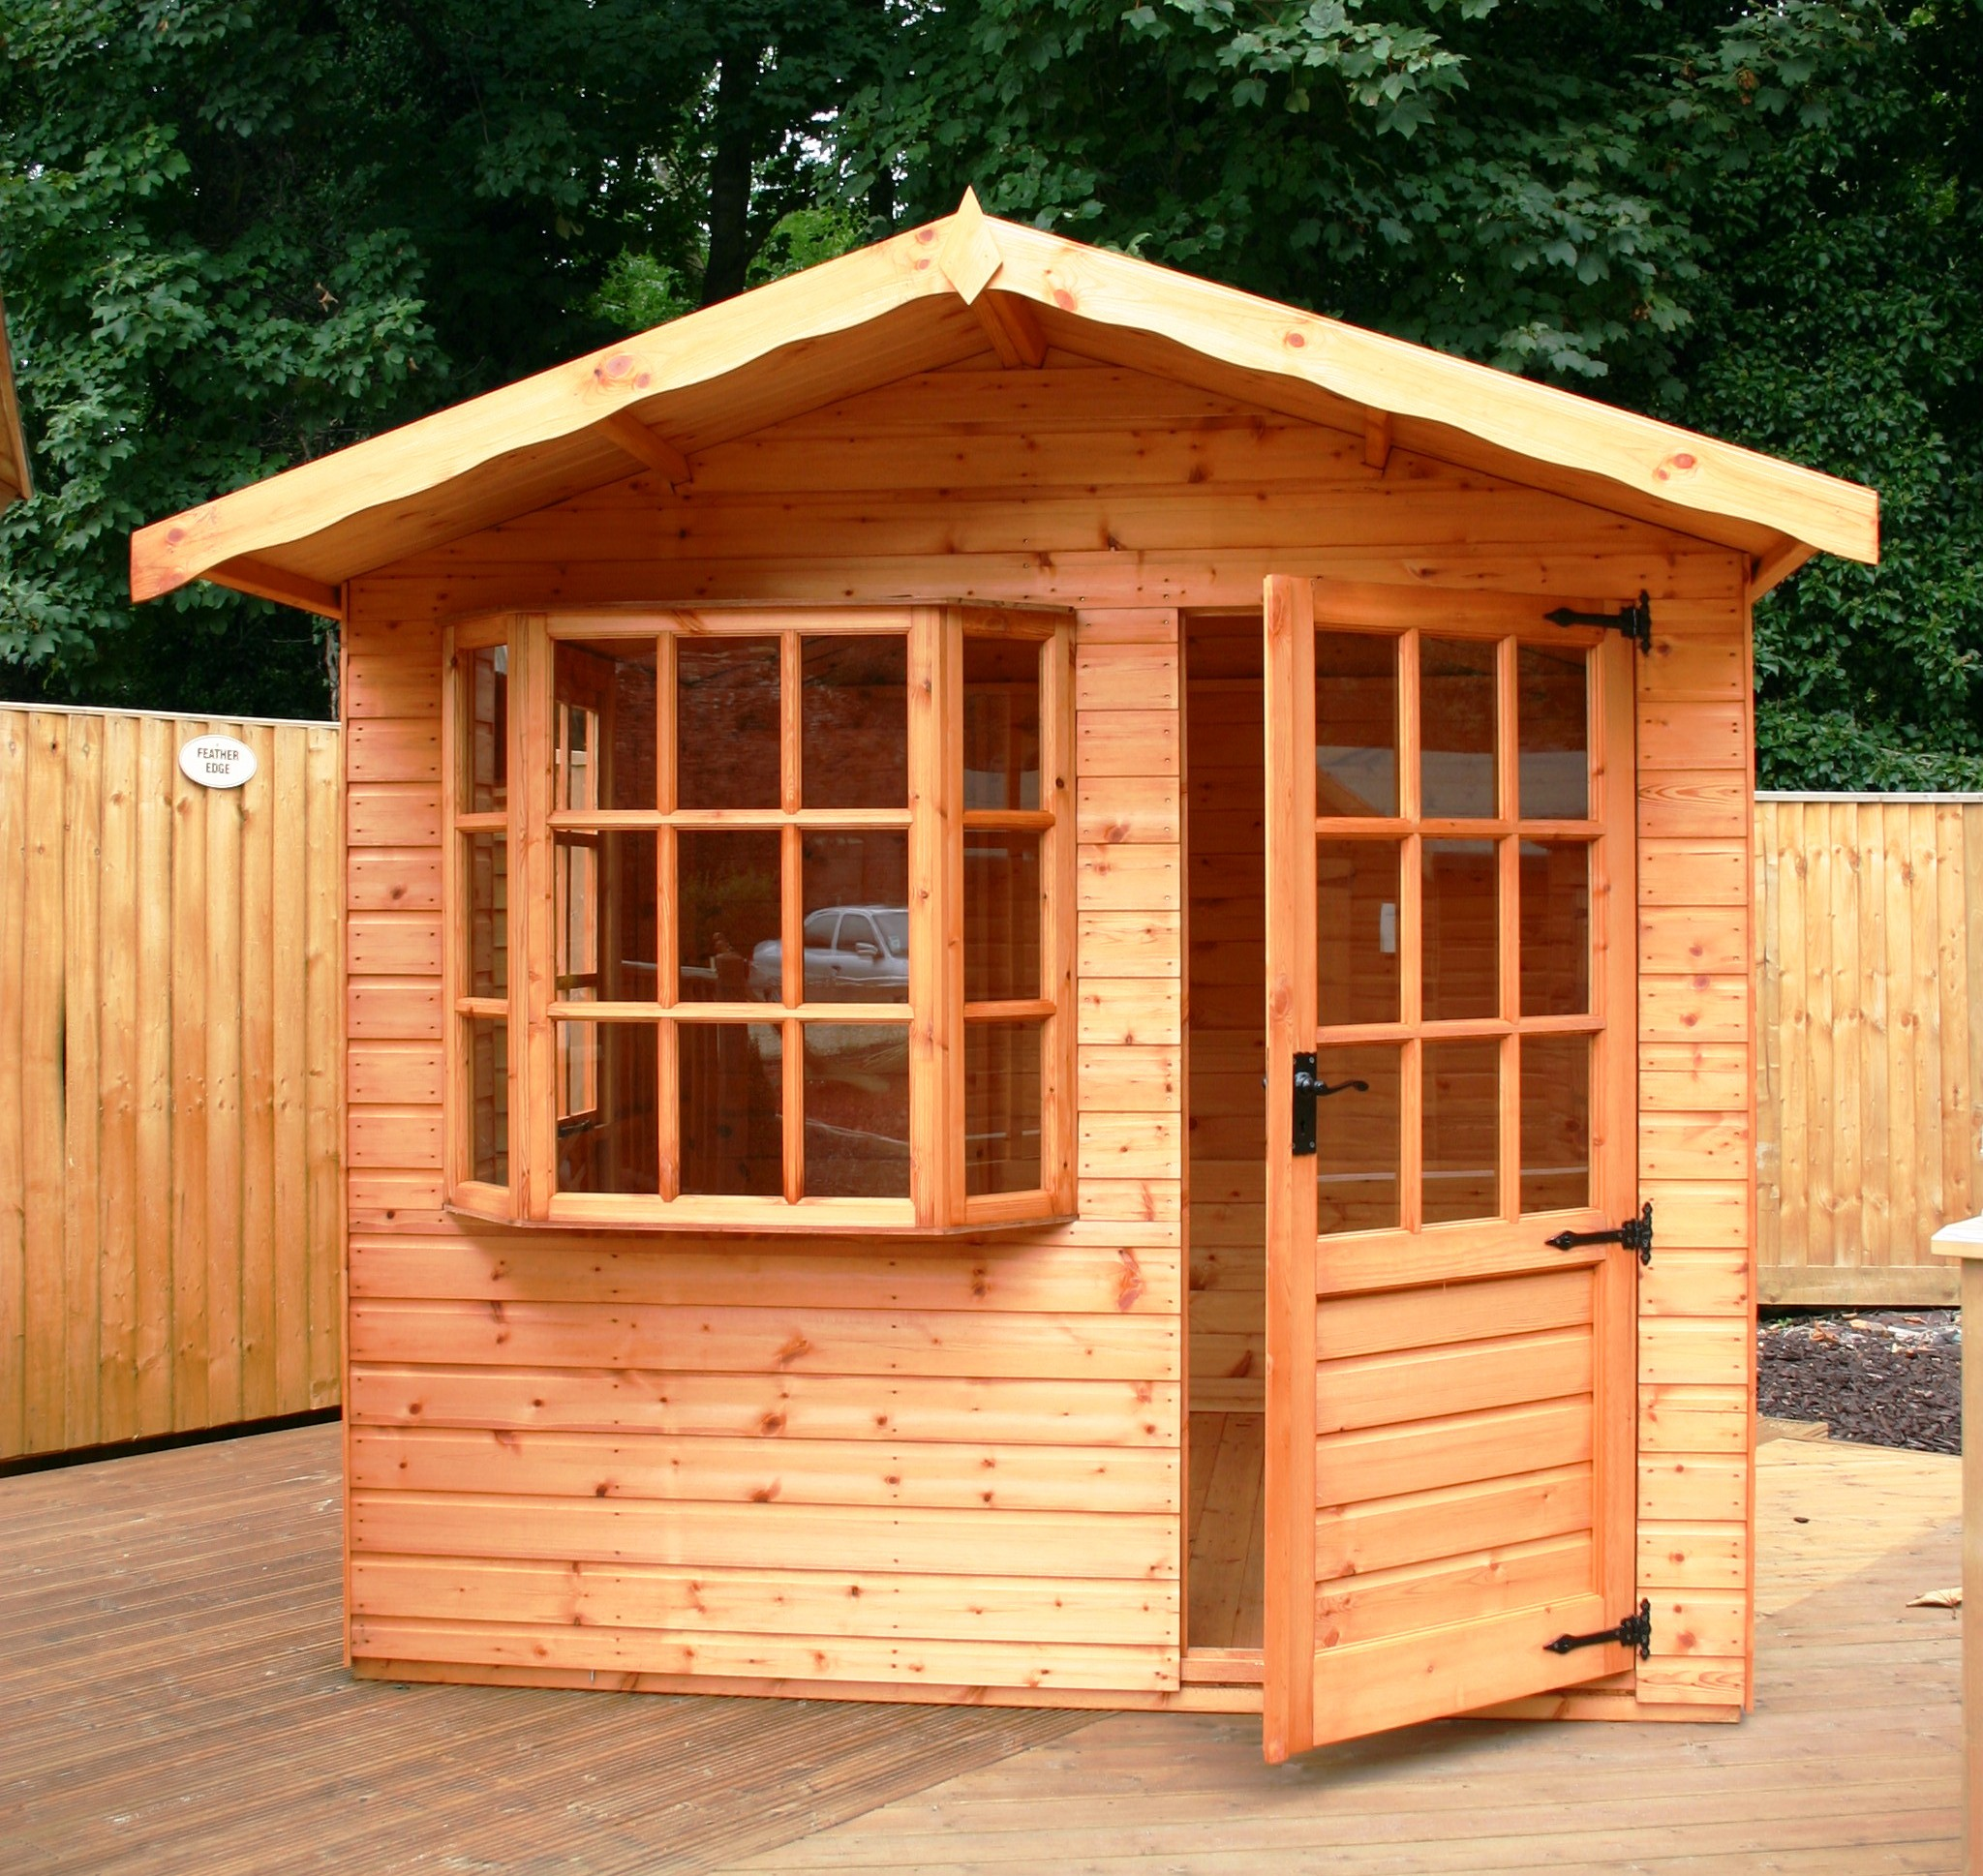 Tsle Garden Sheds Yeovil Somerset Uk